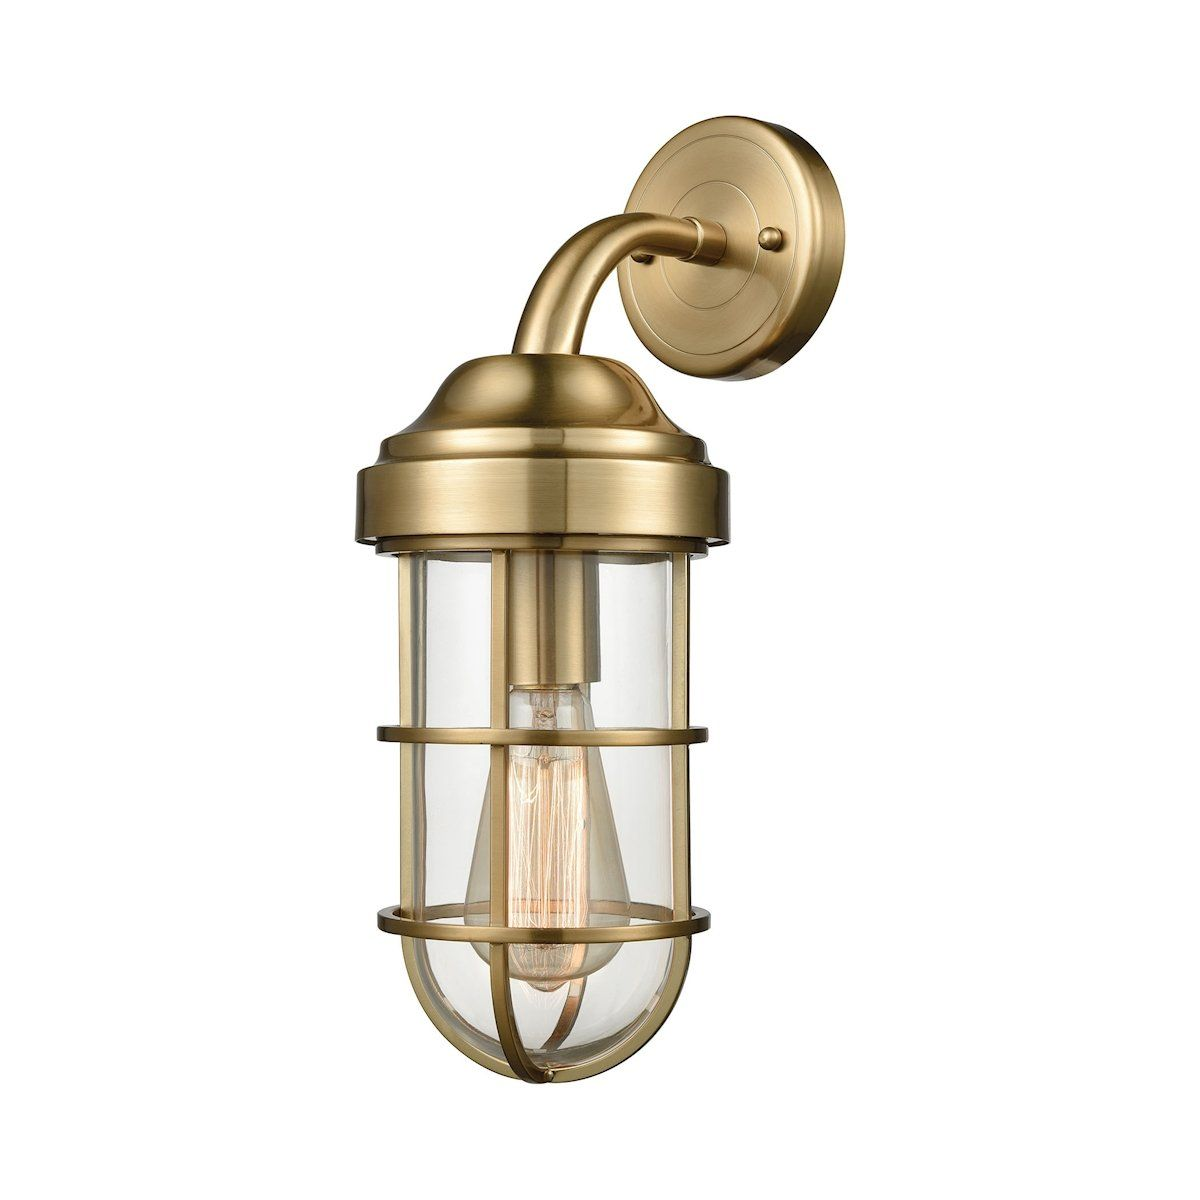 Seaport 1 Light Wall Sconce In Satin Br By Elk Lighting Group